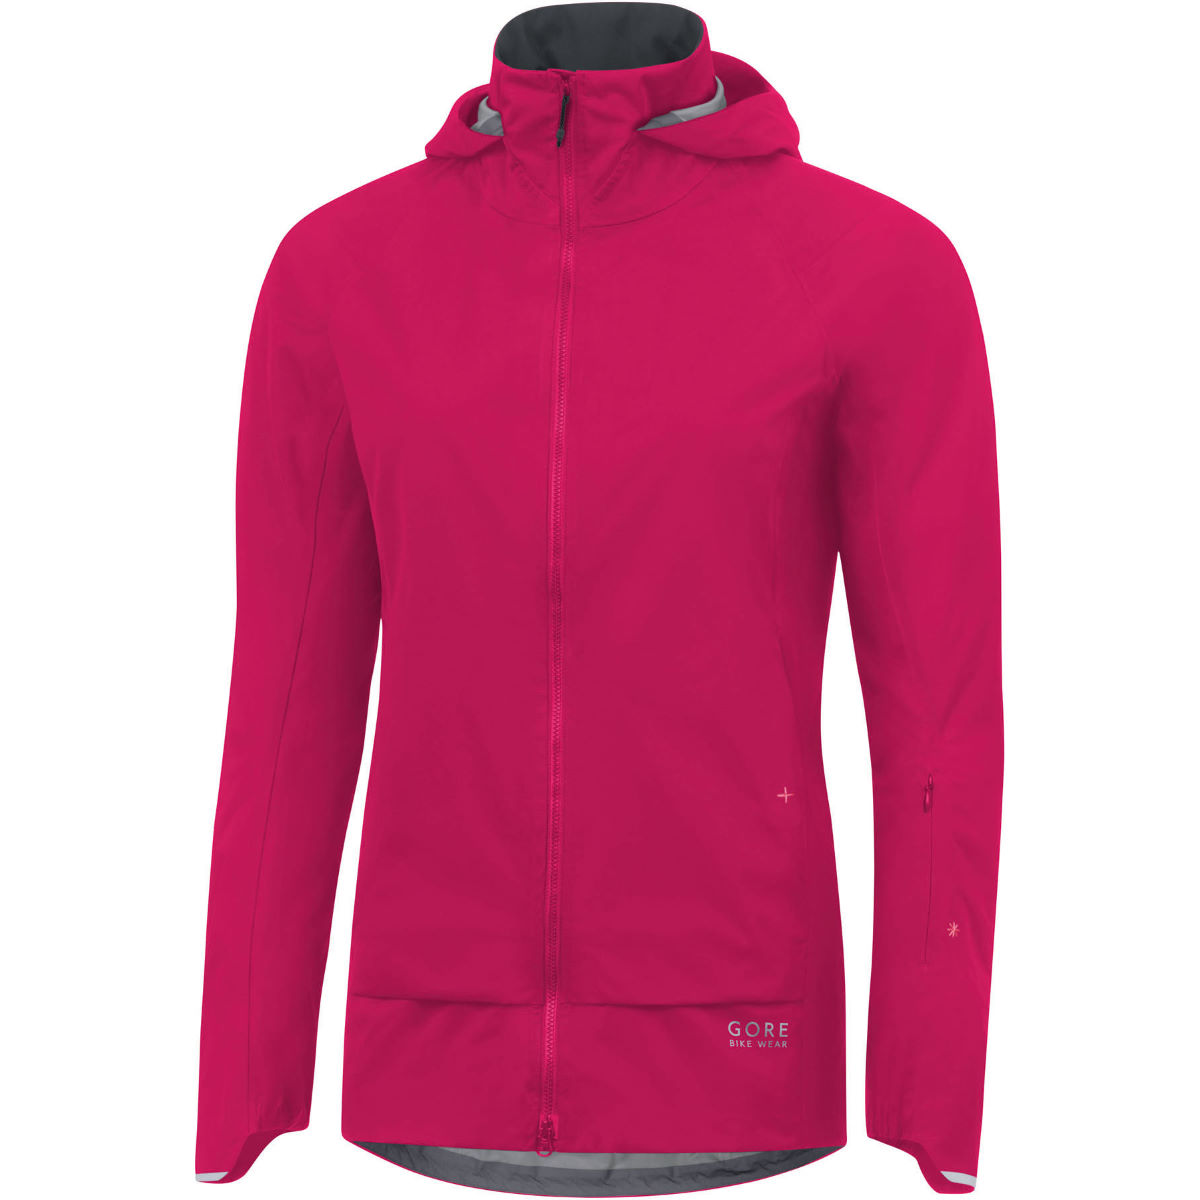 Gore Bike Wear Women's Power Trail GTX Active Jacket - Small Pink